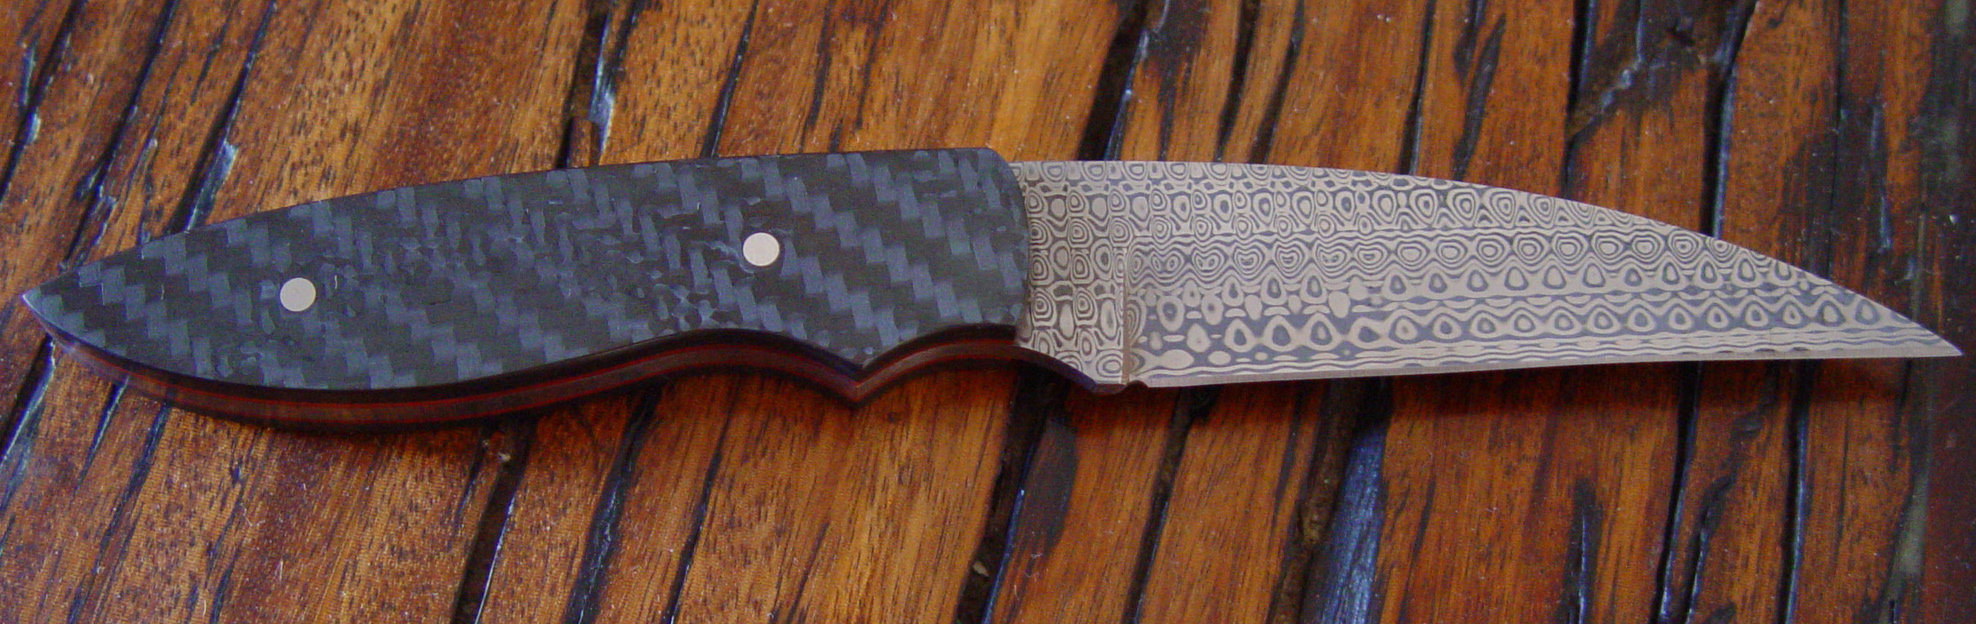 Carbon Fiber Bear claw.